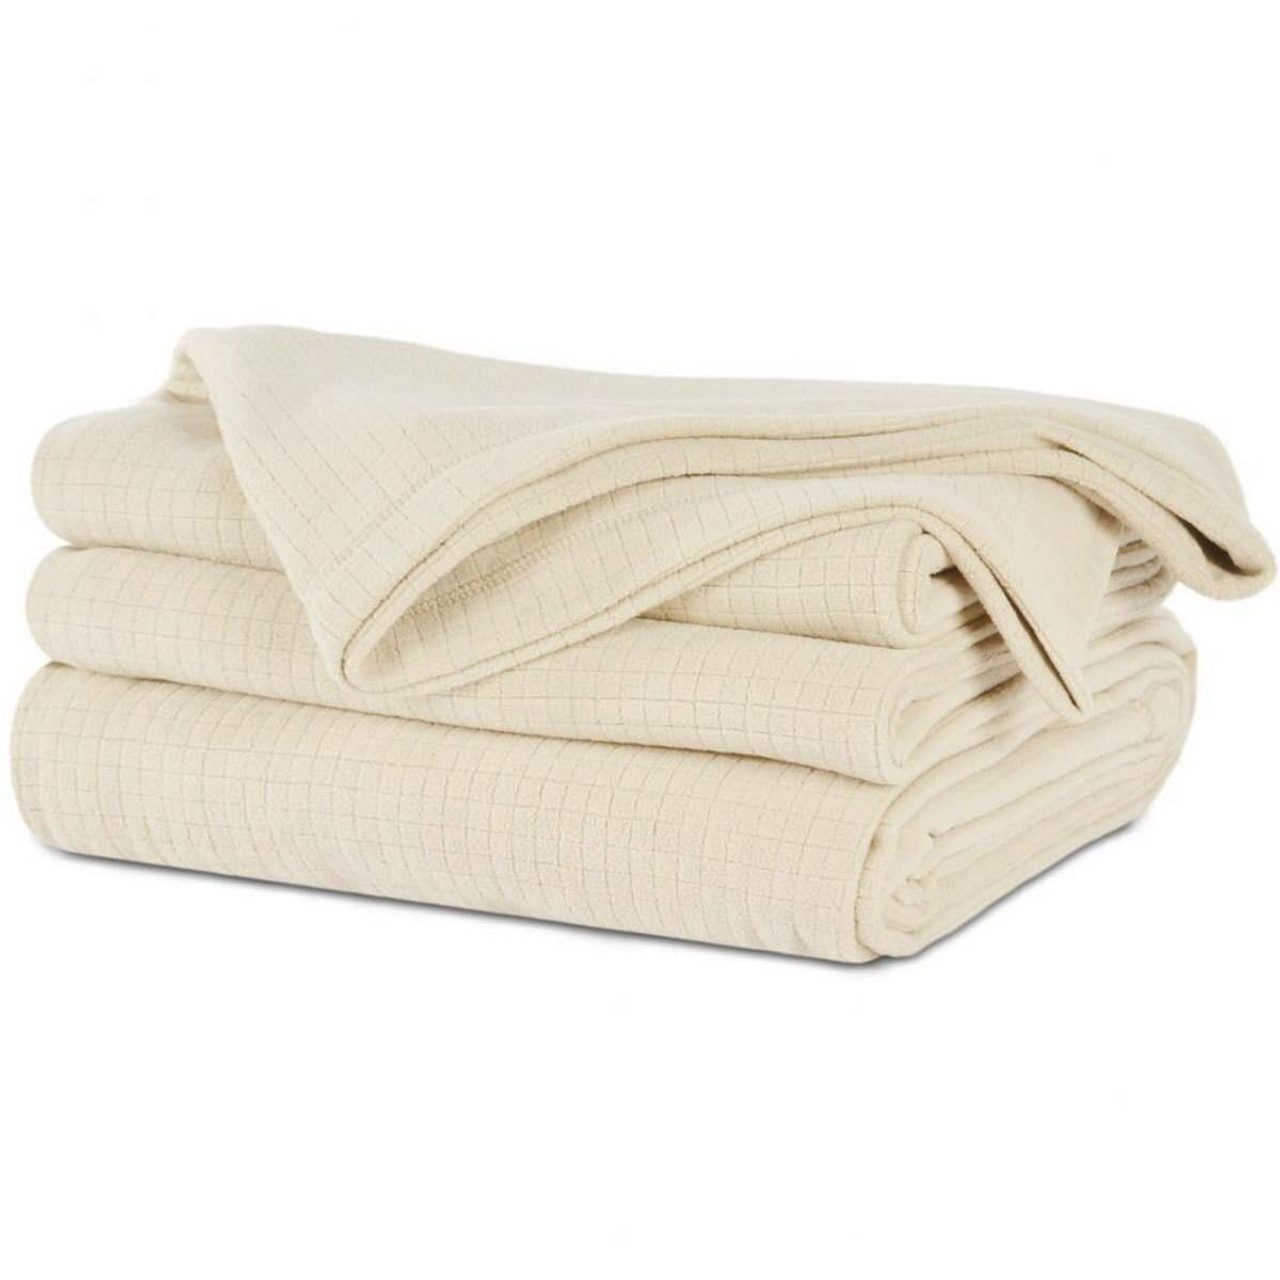 BERKSHIRE or POLARTEC BLANKETS or 270 GSM